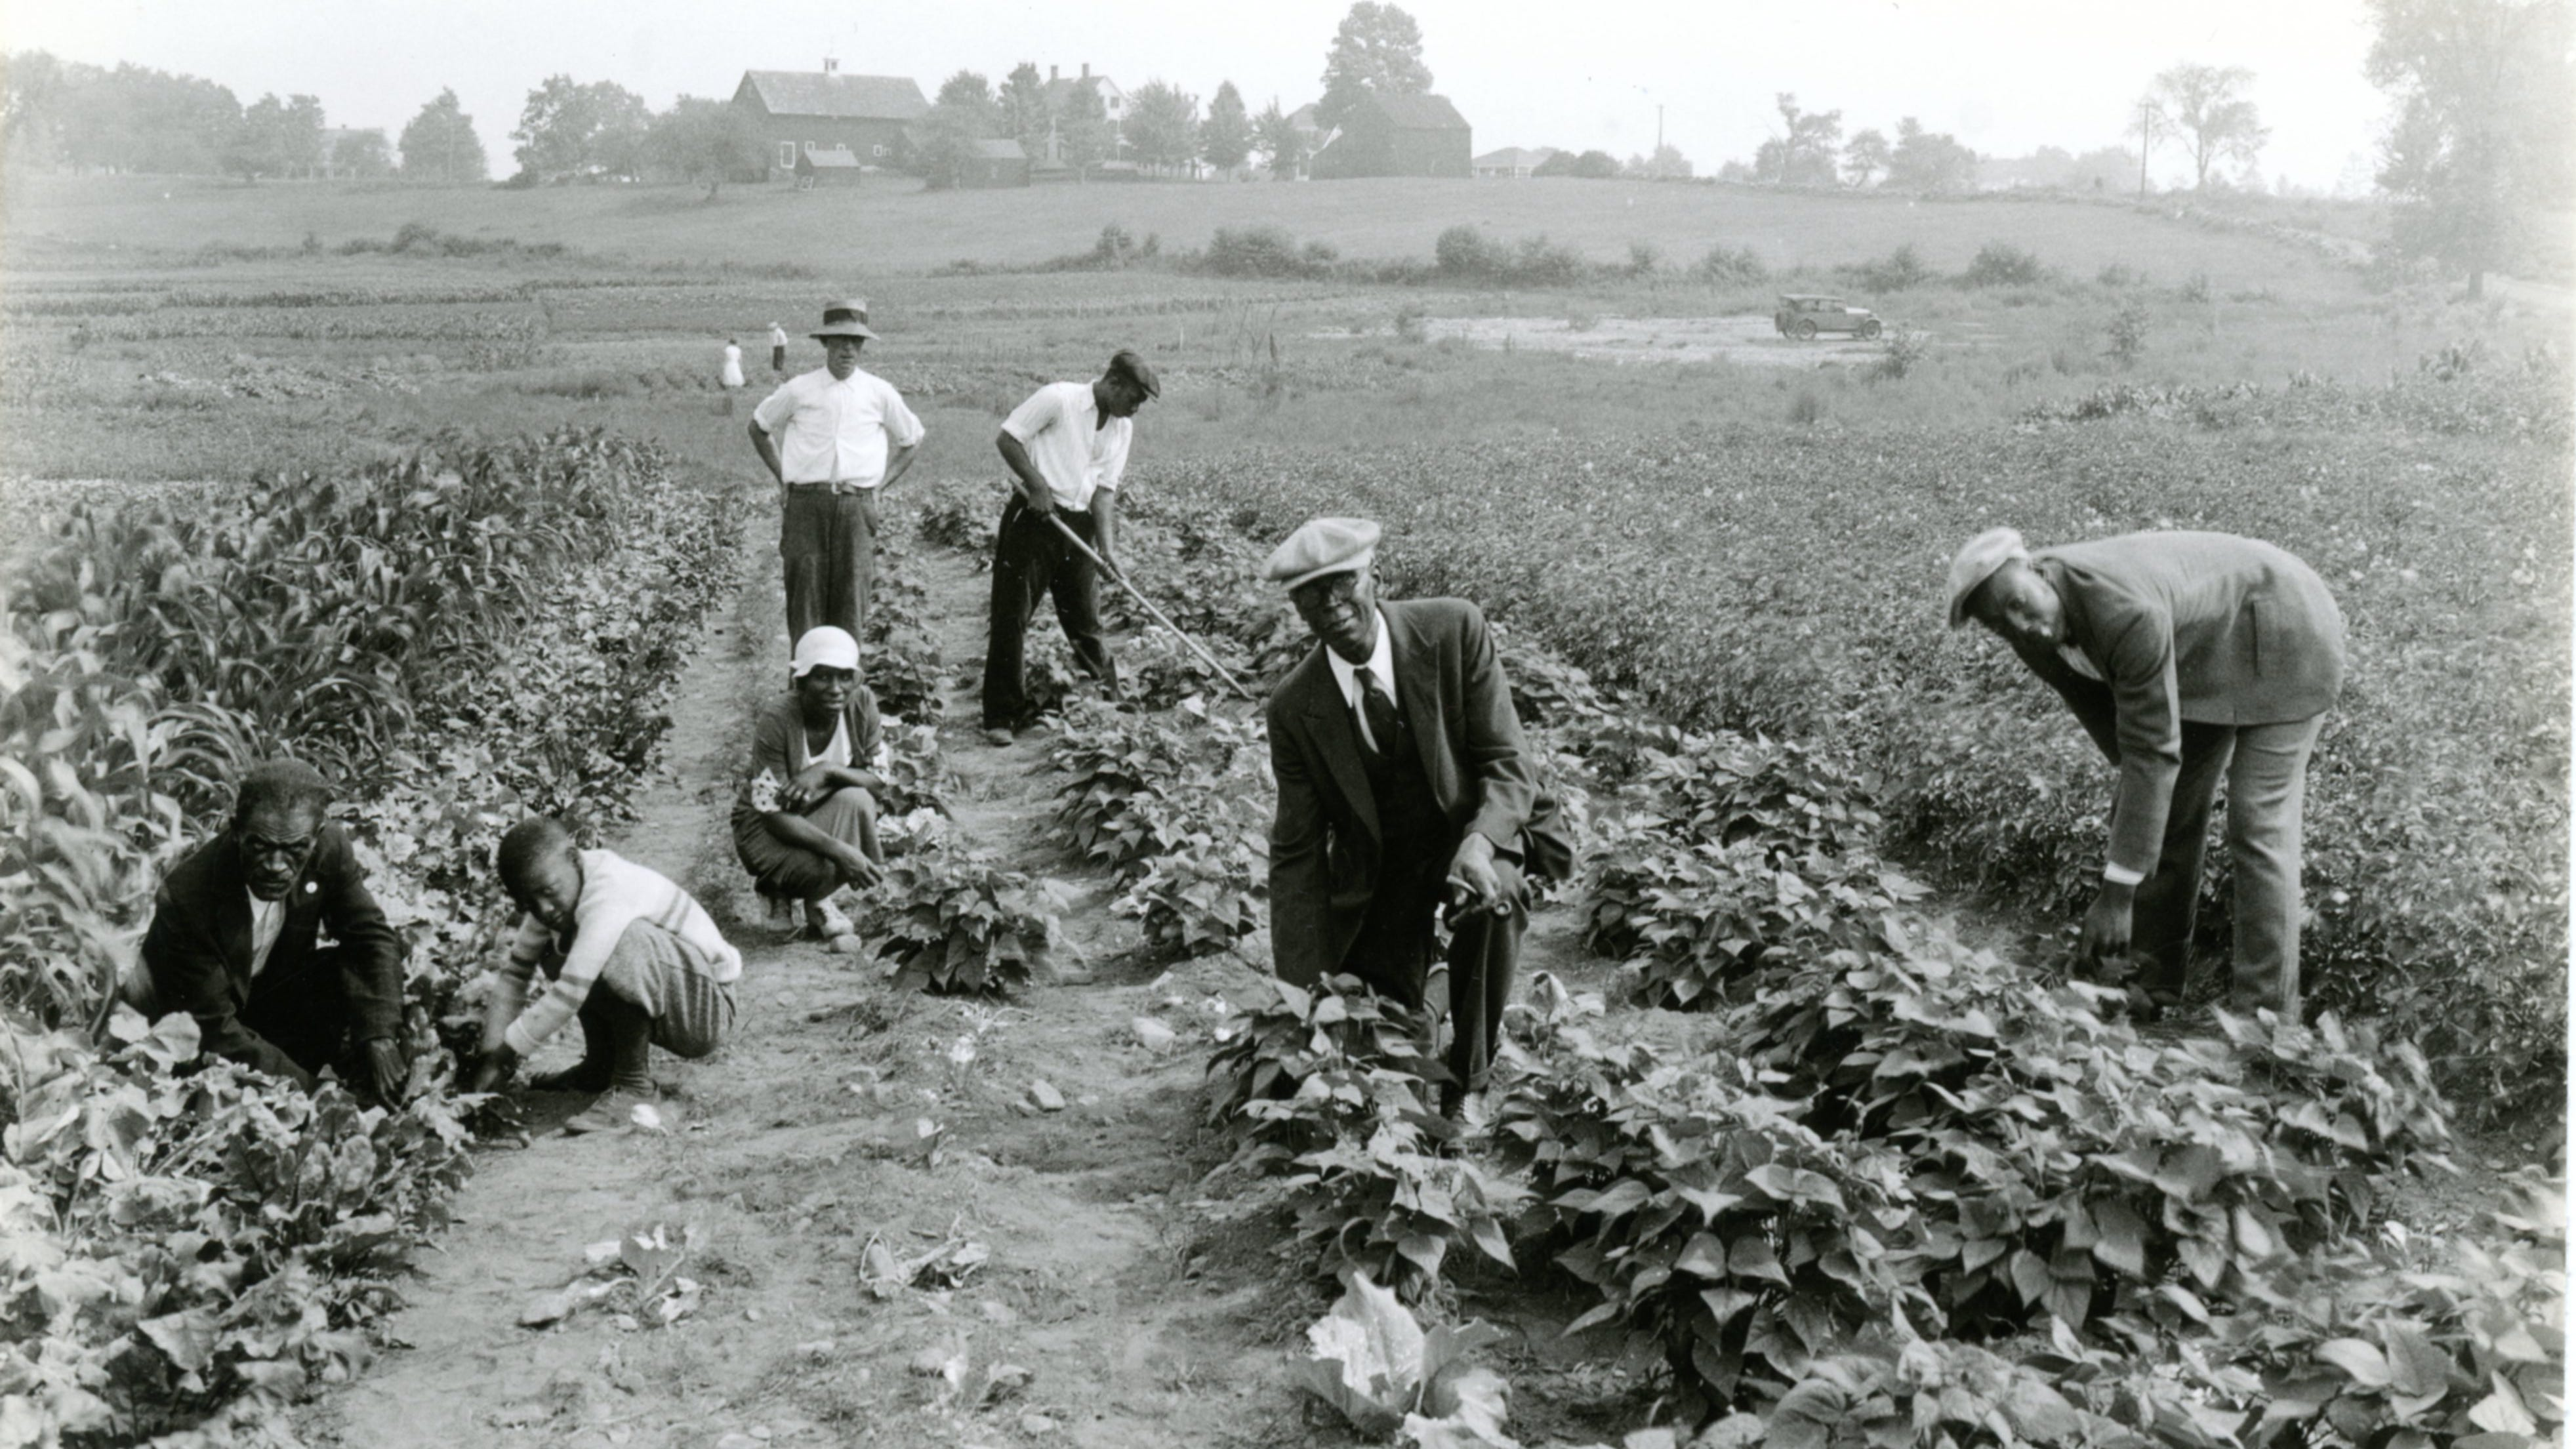 An unidentified Black family poses next to their subsistence garden plot off Thaxter Road on land loaned by the Portsmouth Building Association, c. 1935. In the background is the Sanderson family barn on Spinney Road.